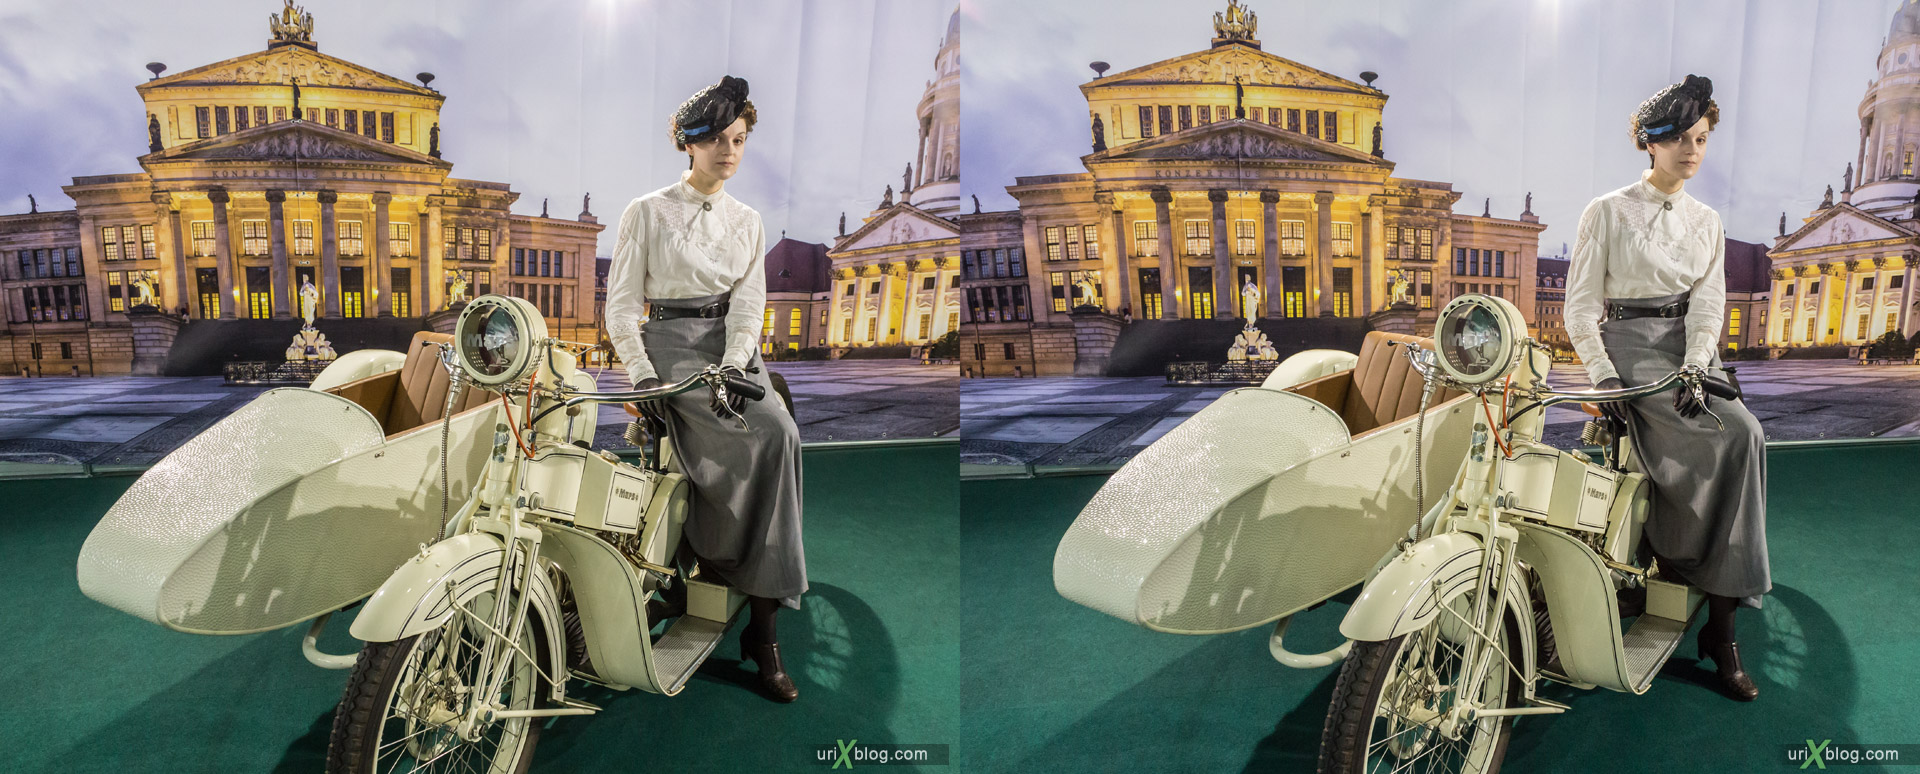 2014, old motorcycle, motorbike, Moscow International Automobile Salon, MIAS, Crocus Expo, Moscow, Russia, augest, 3D, stereo pair, cross-eyed, crossview, cross view stereo pair, stereoscopic